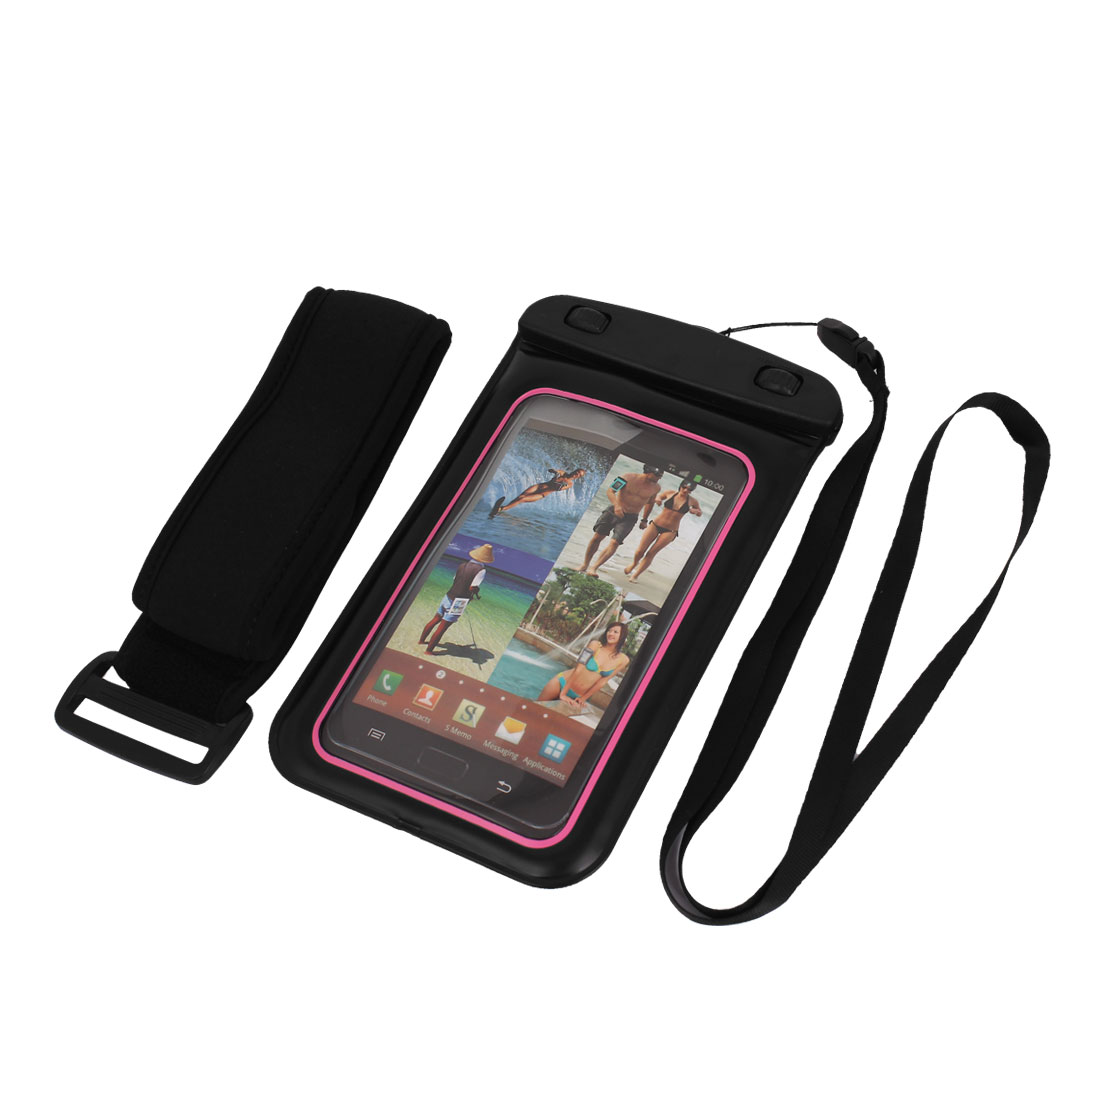 "Underwater Waterproof Case Dry Bag Cover Pouch Sleeve Black Pink for 5.5"" Phone"